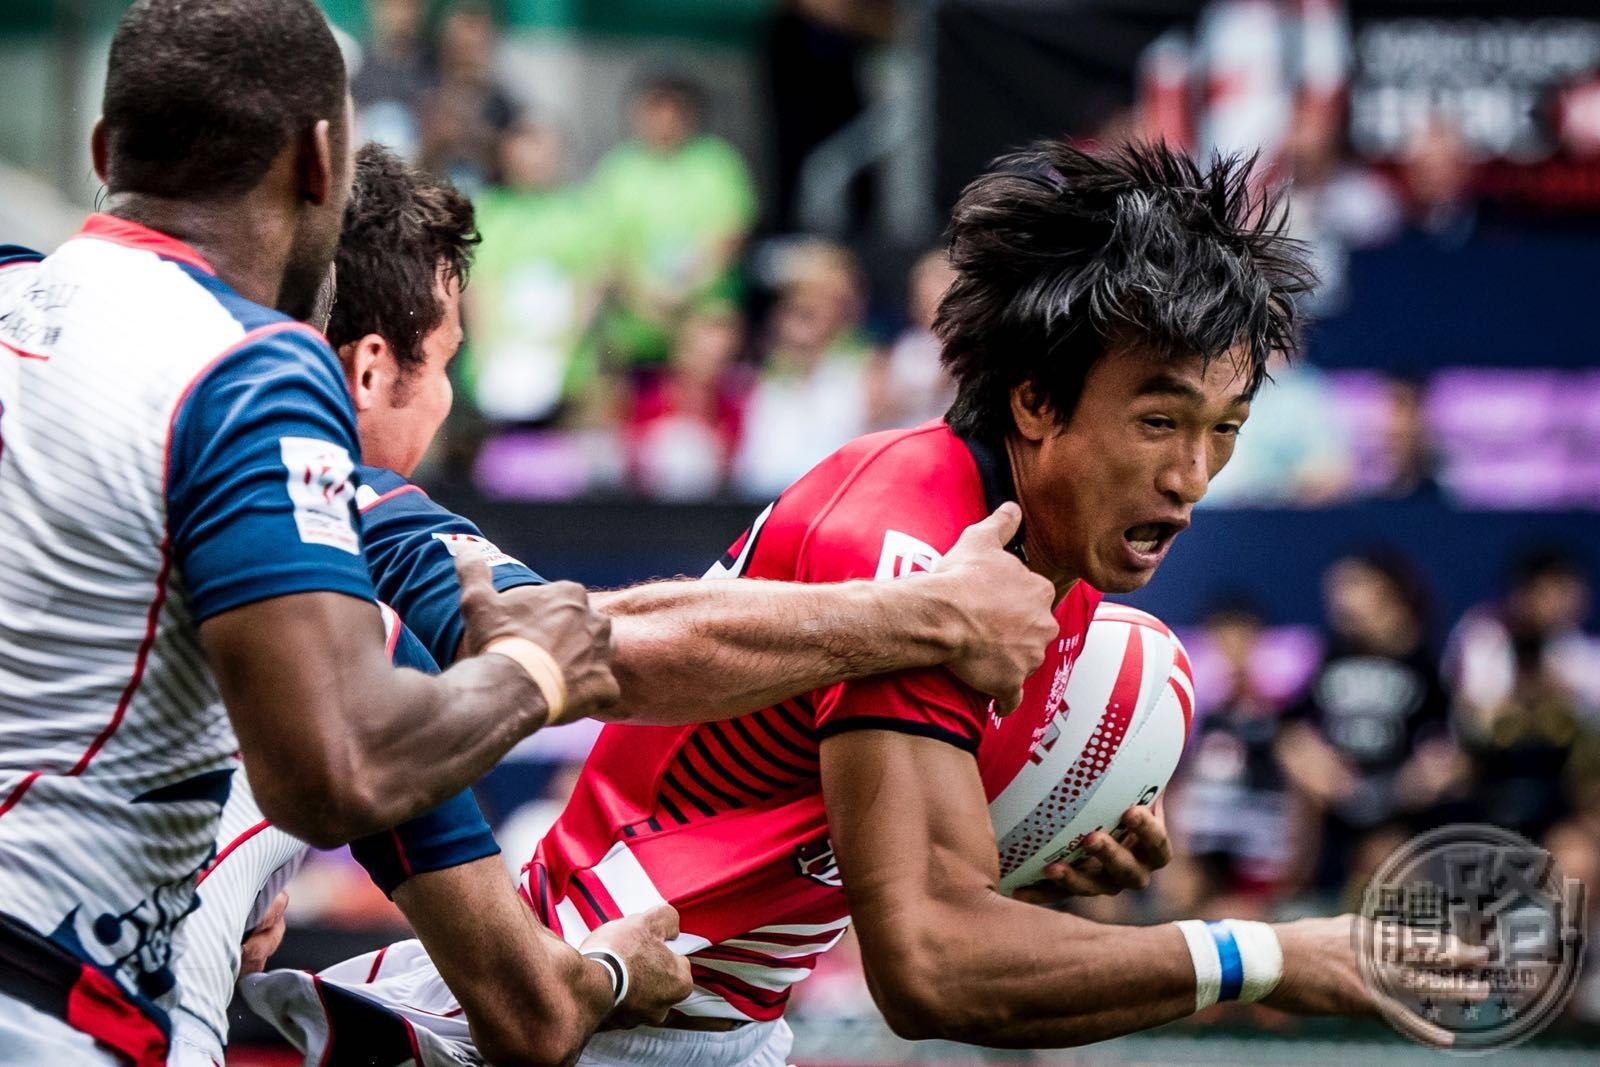 rugby7s_rugby_160408-1